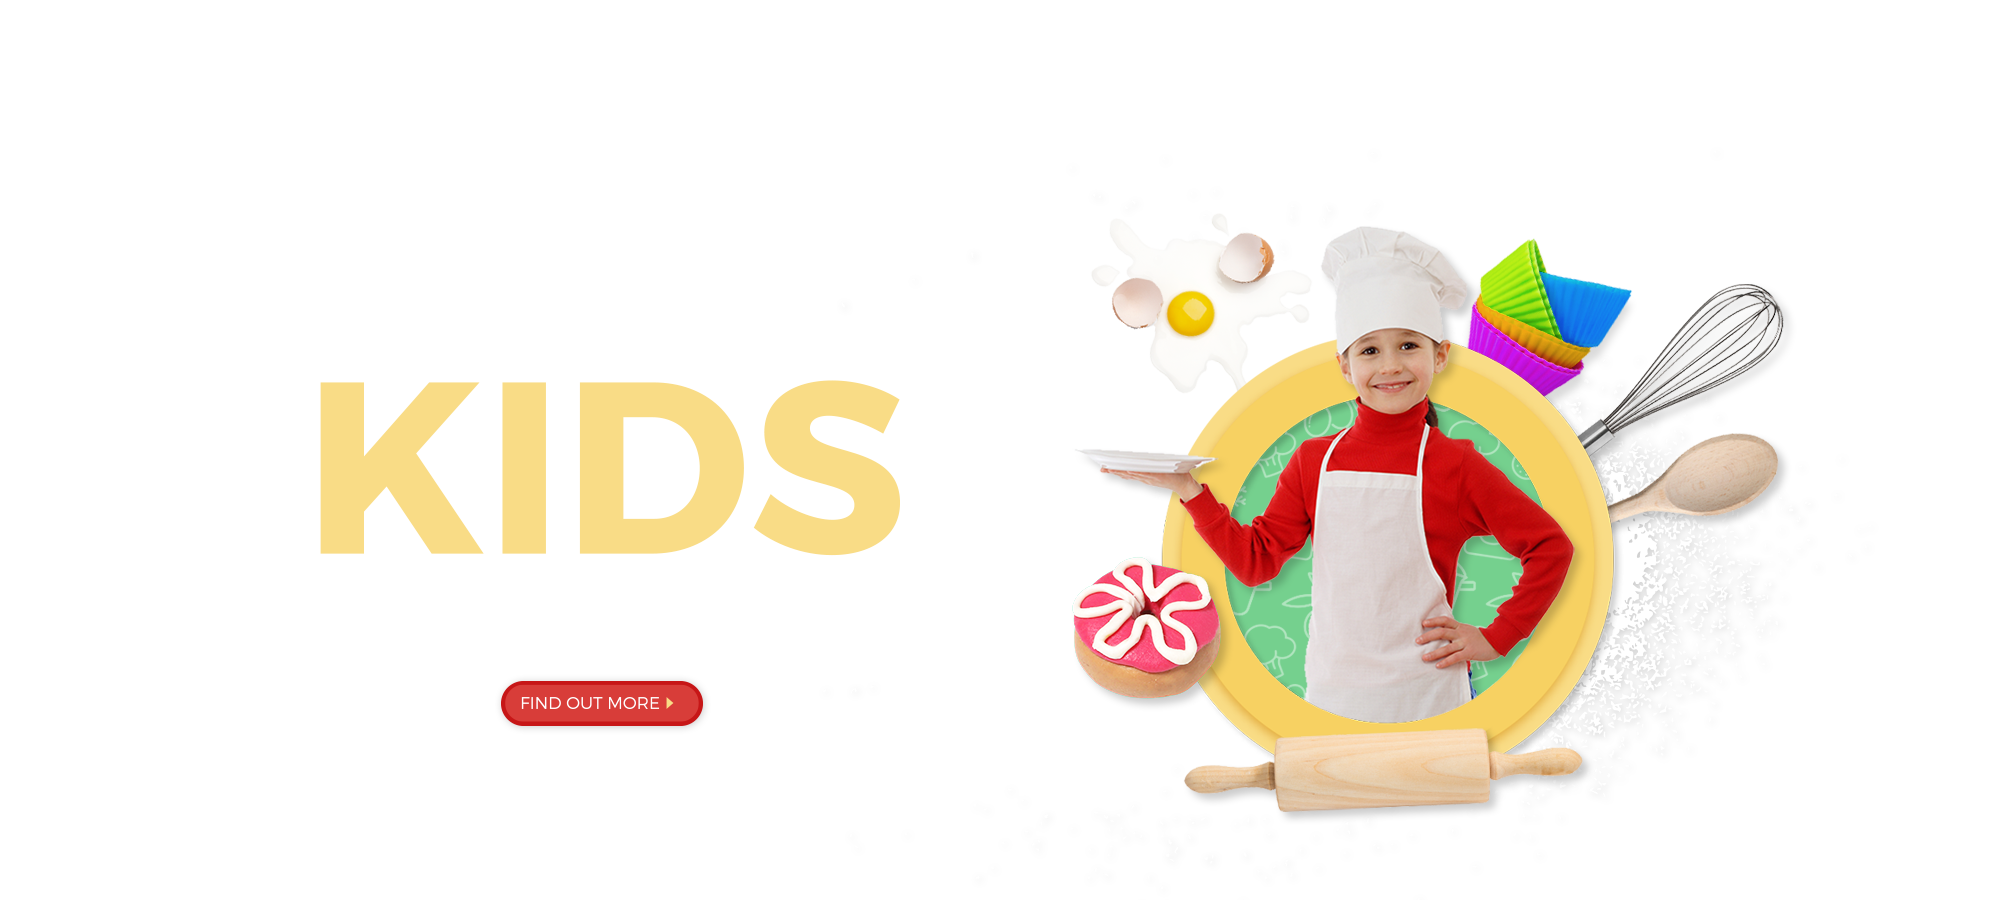 Children's Cooking Classes East Riding, Cooking Classes Children East Riding, Children's Party Ideas East Riding